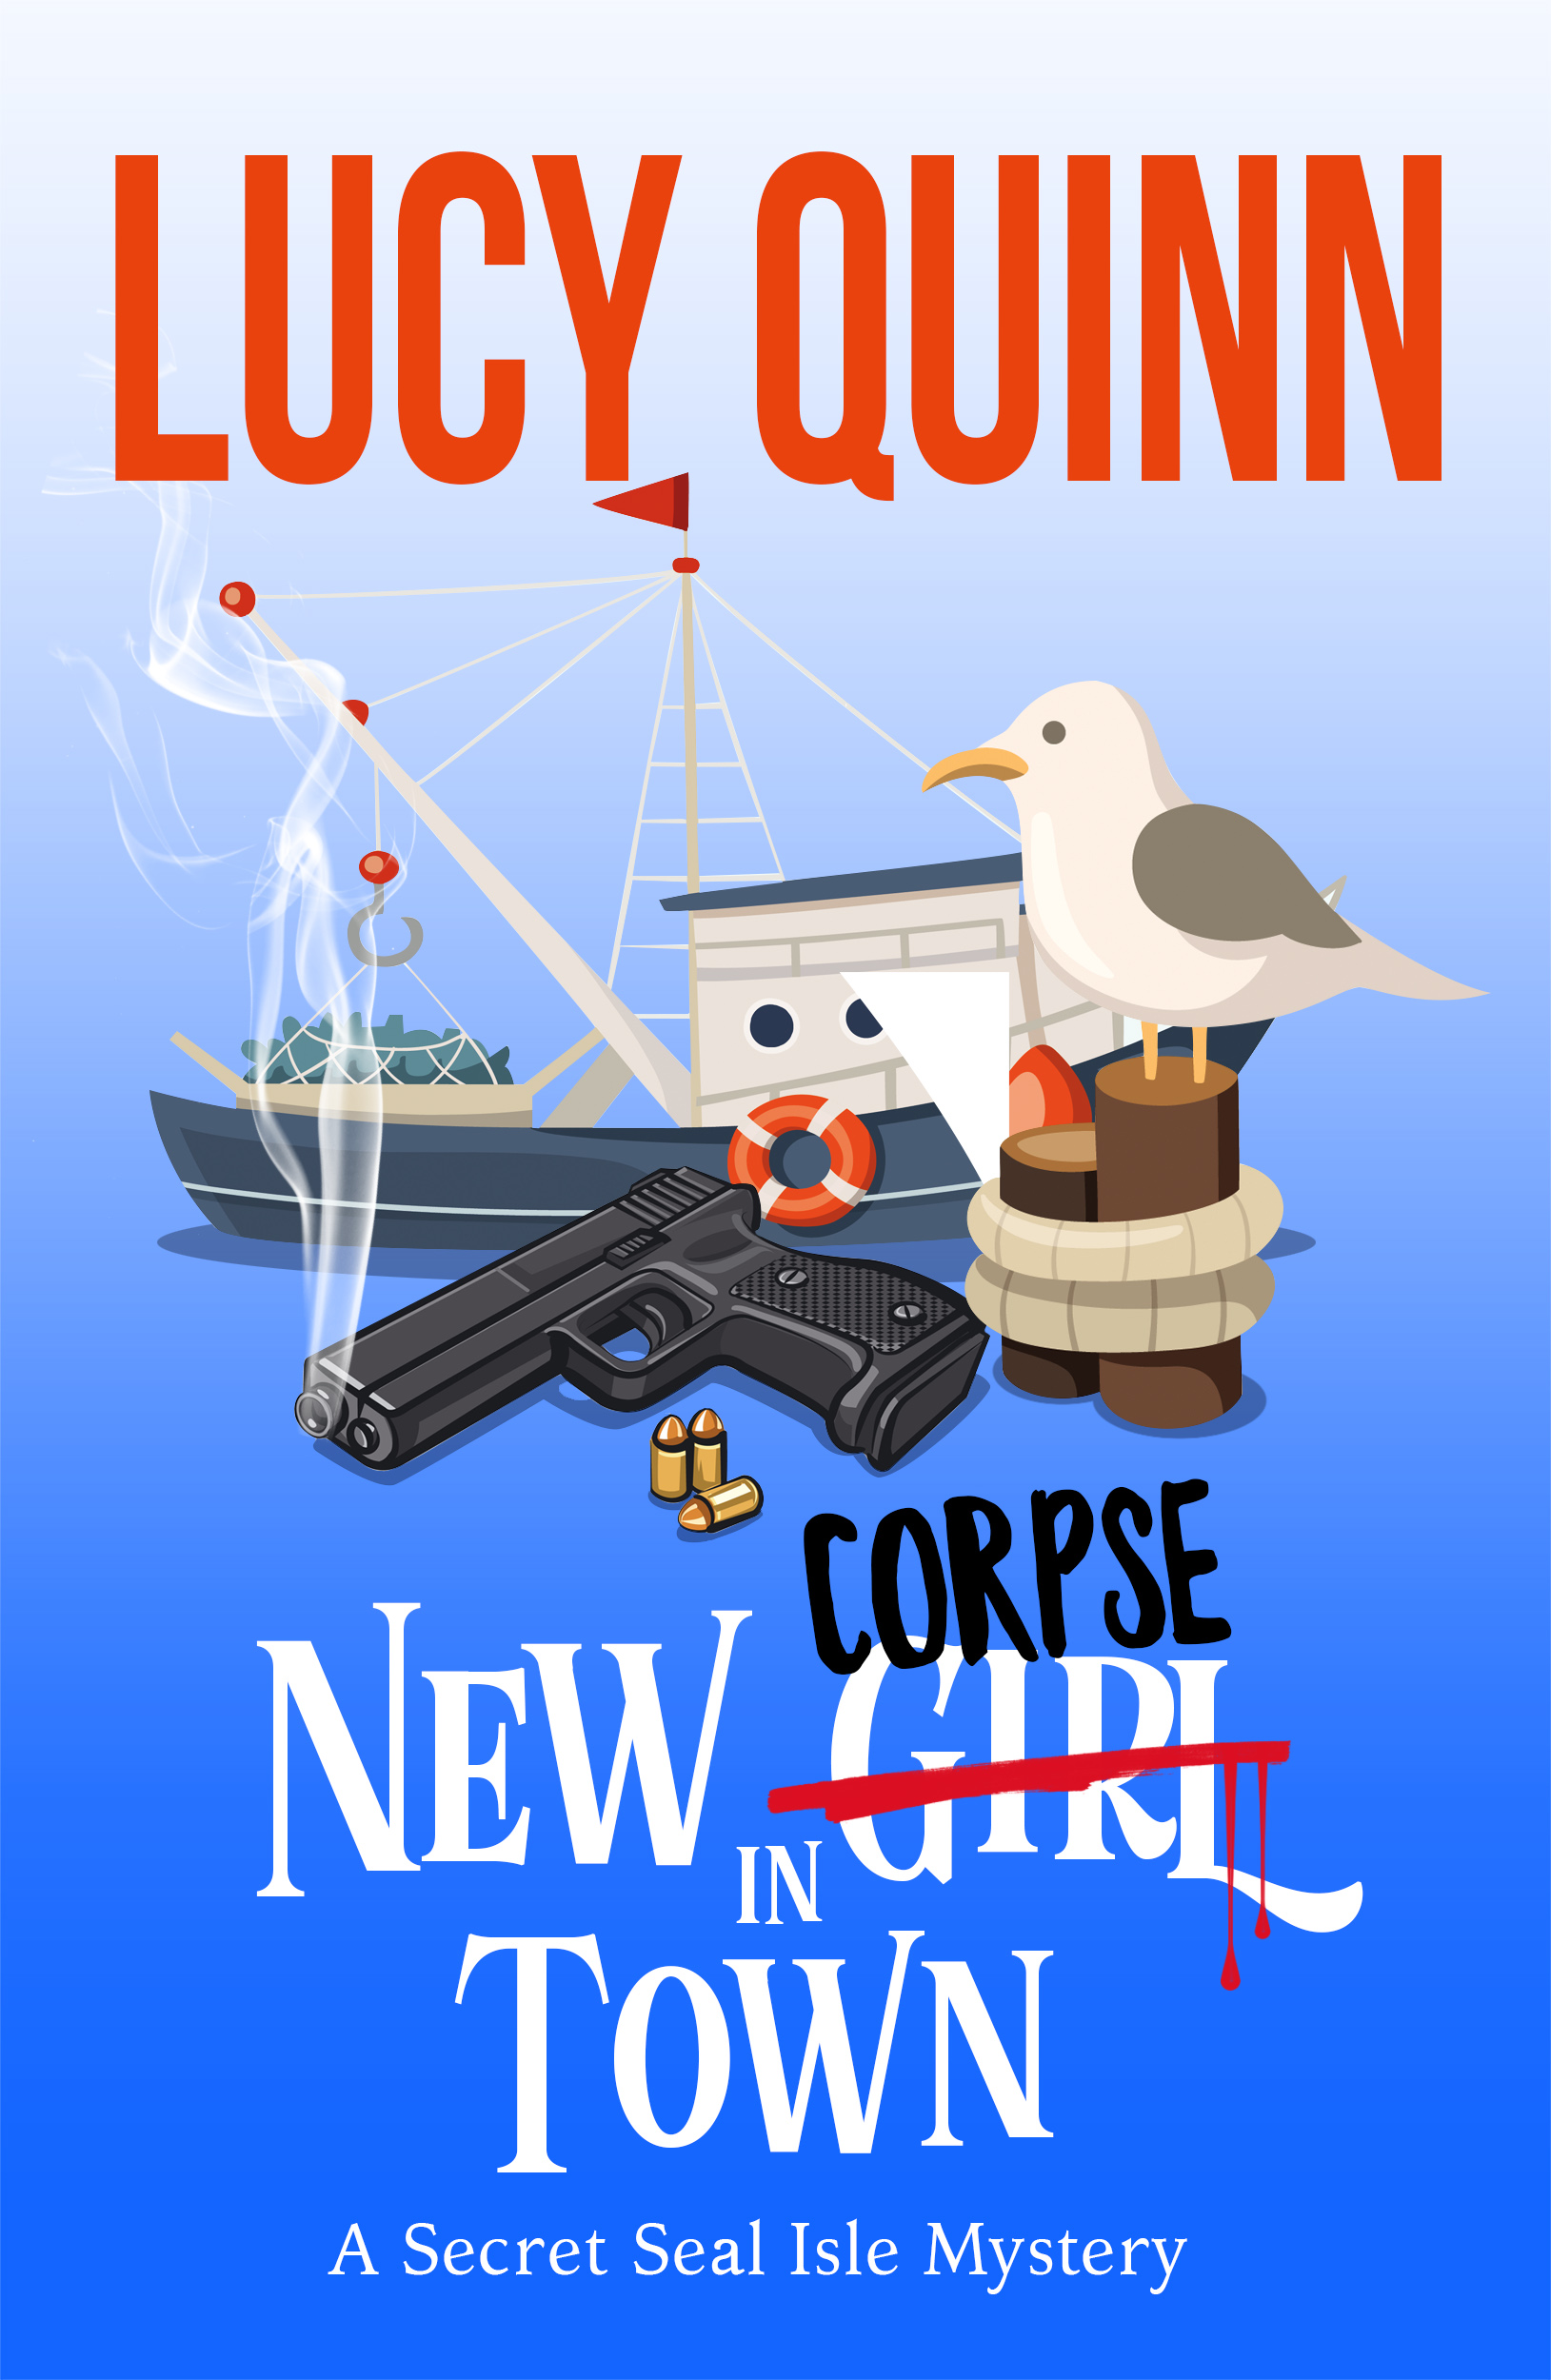 New Corpse in Town (Secret Seal Isle Mysteries, Book One)